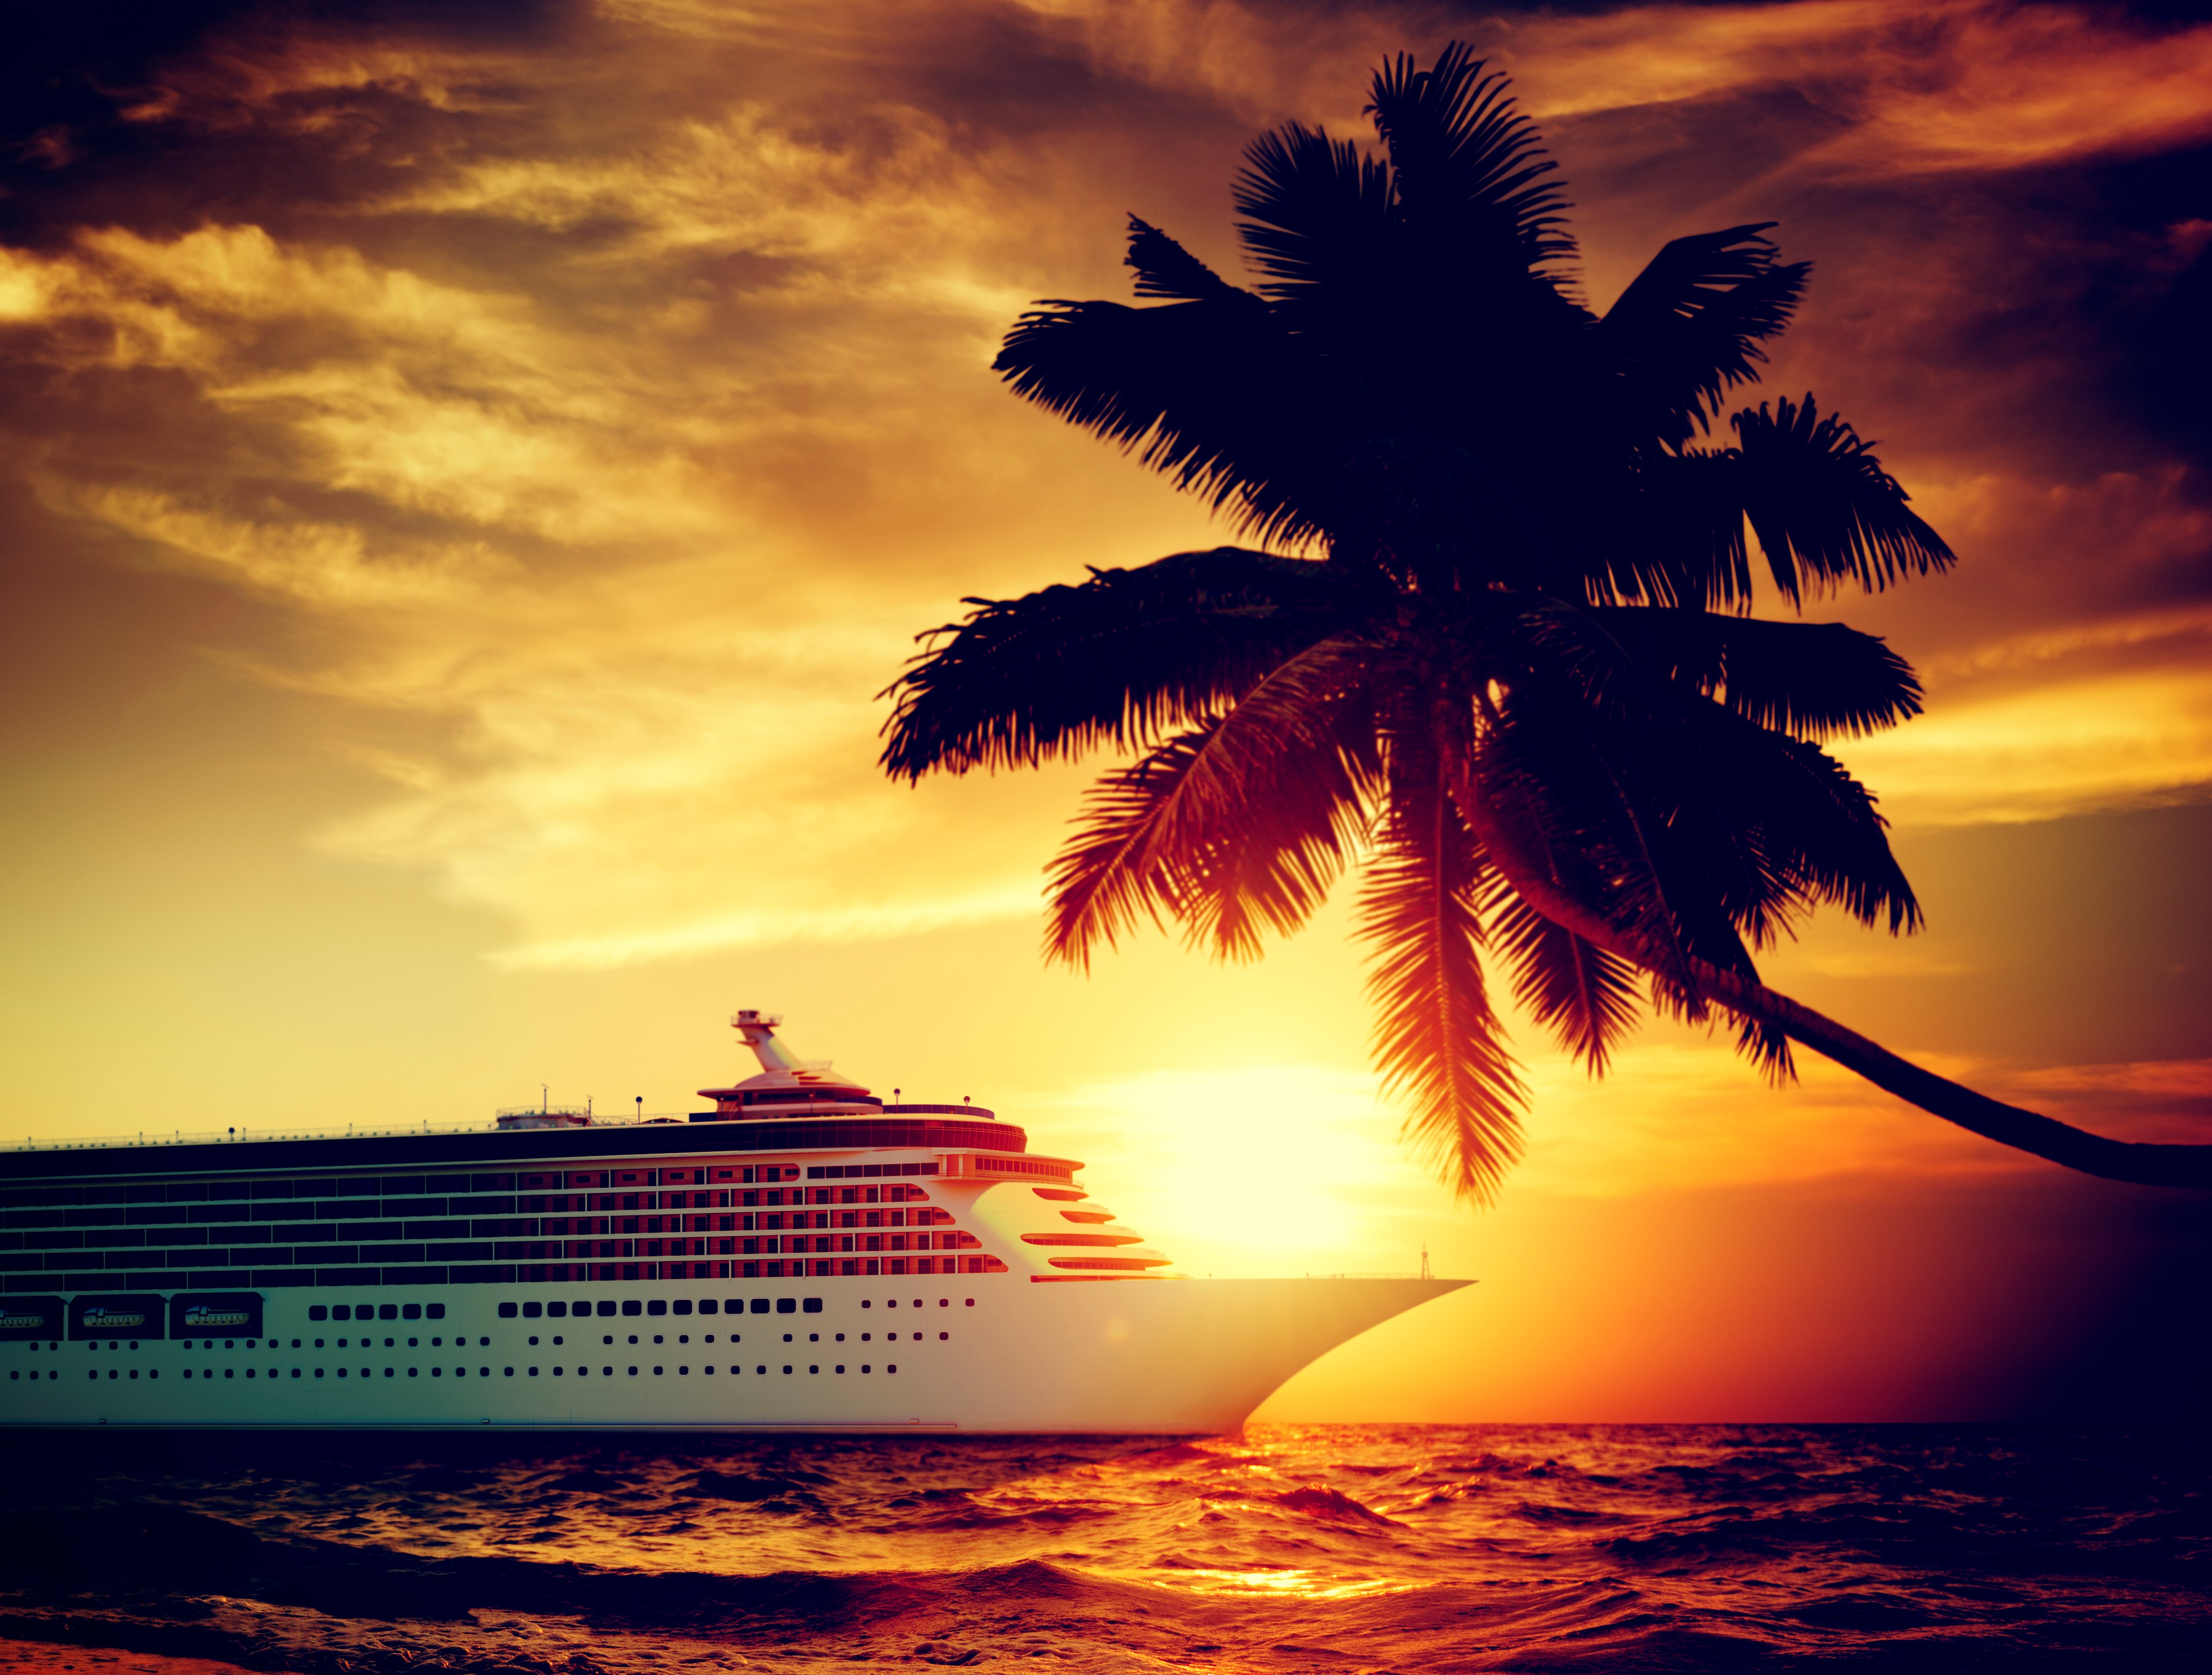 cruiseline ship tropical palmtree ocean sunset